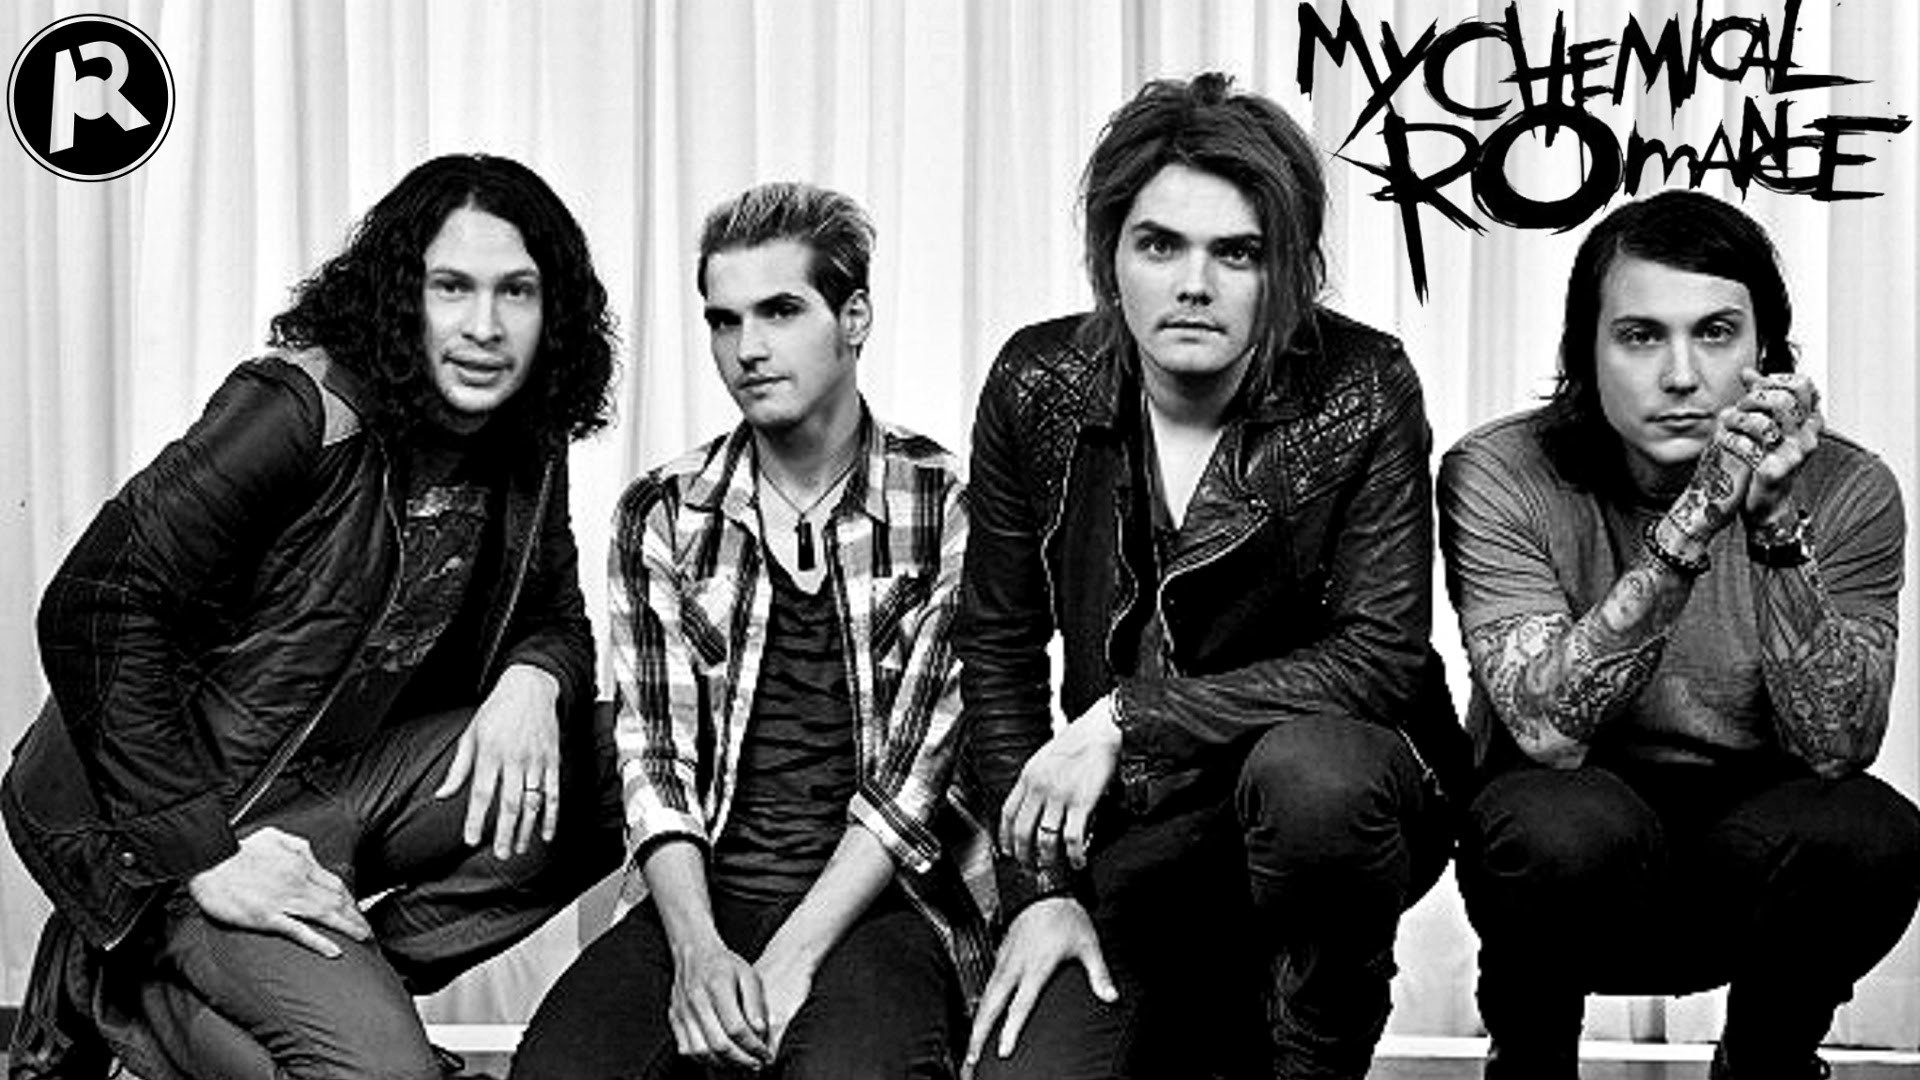 My Chemical Romance Wallpaper (59+ Images